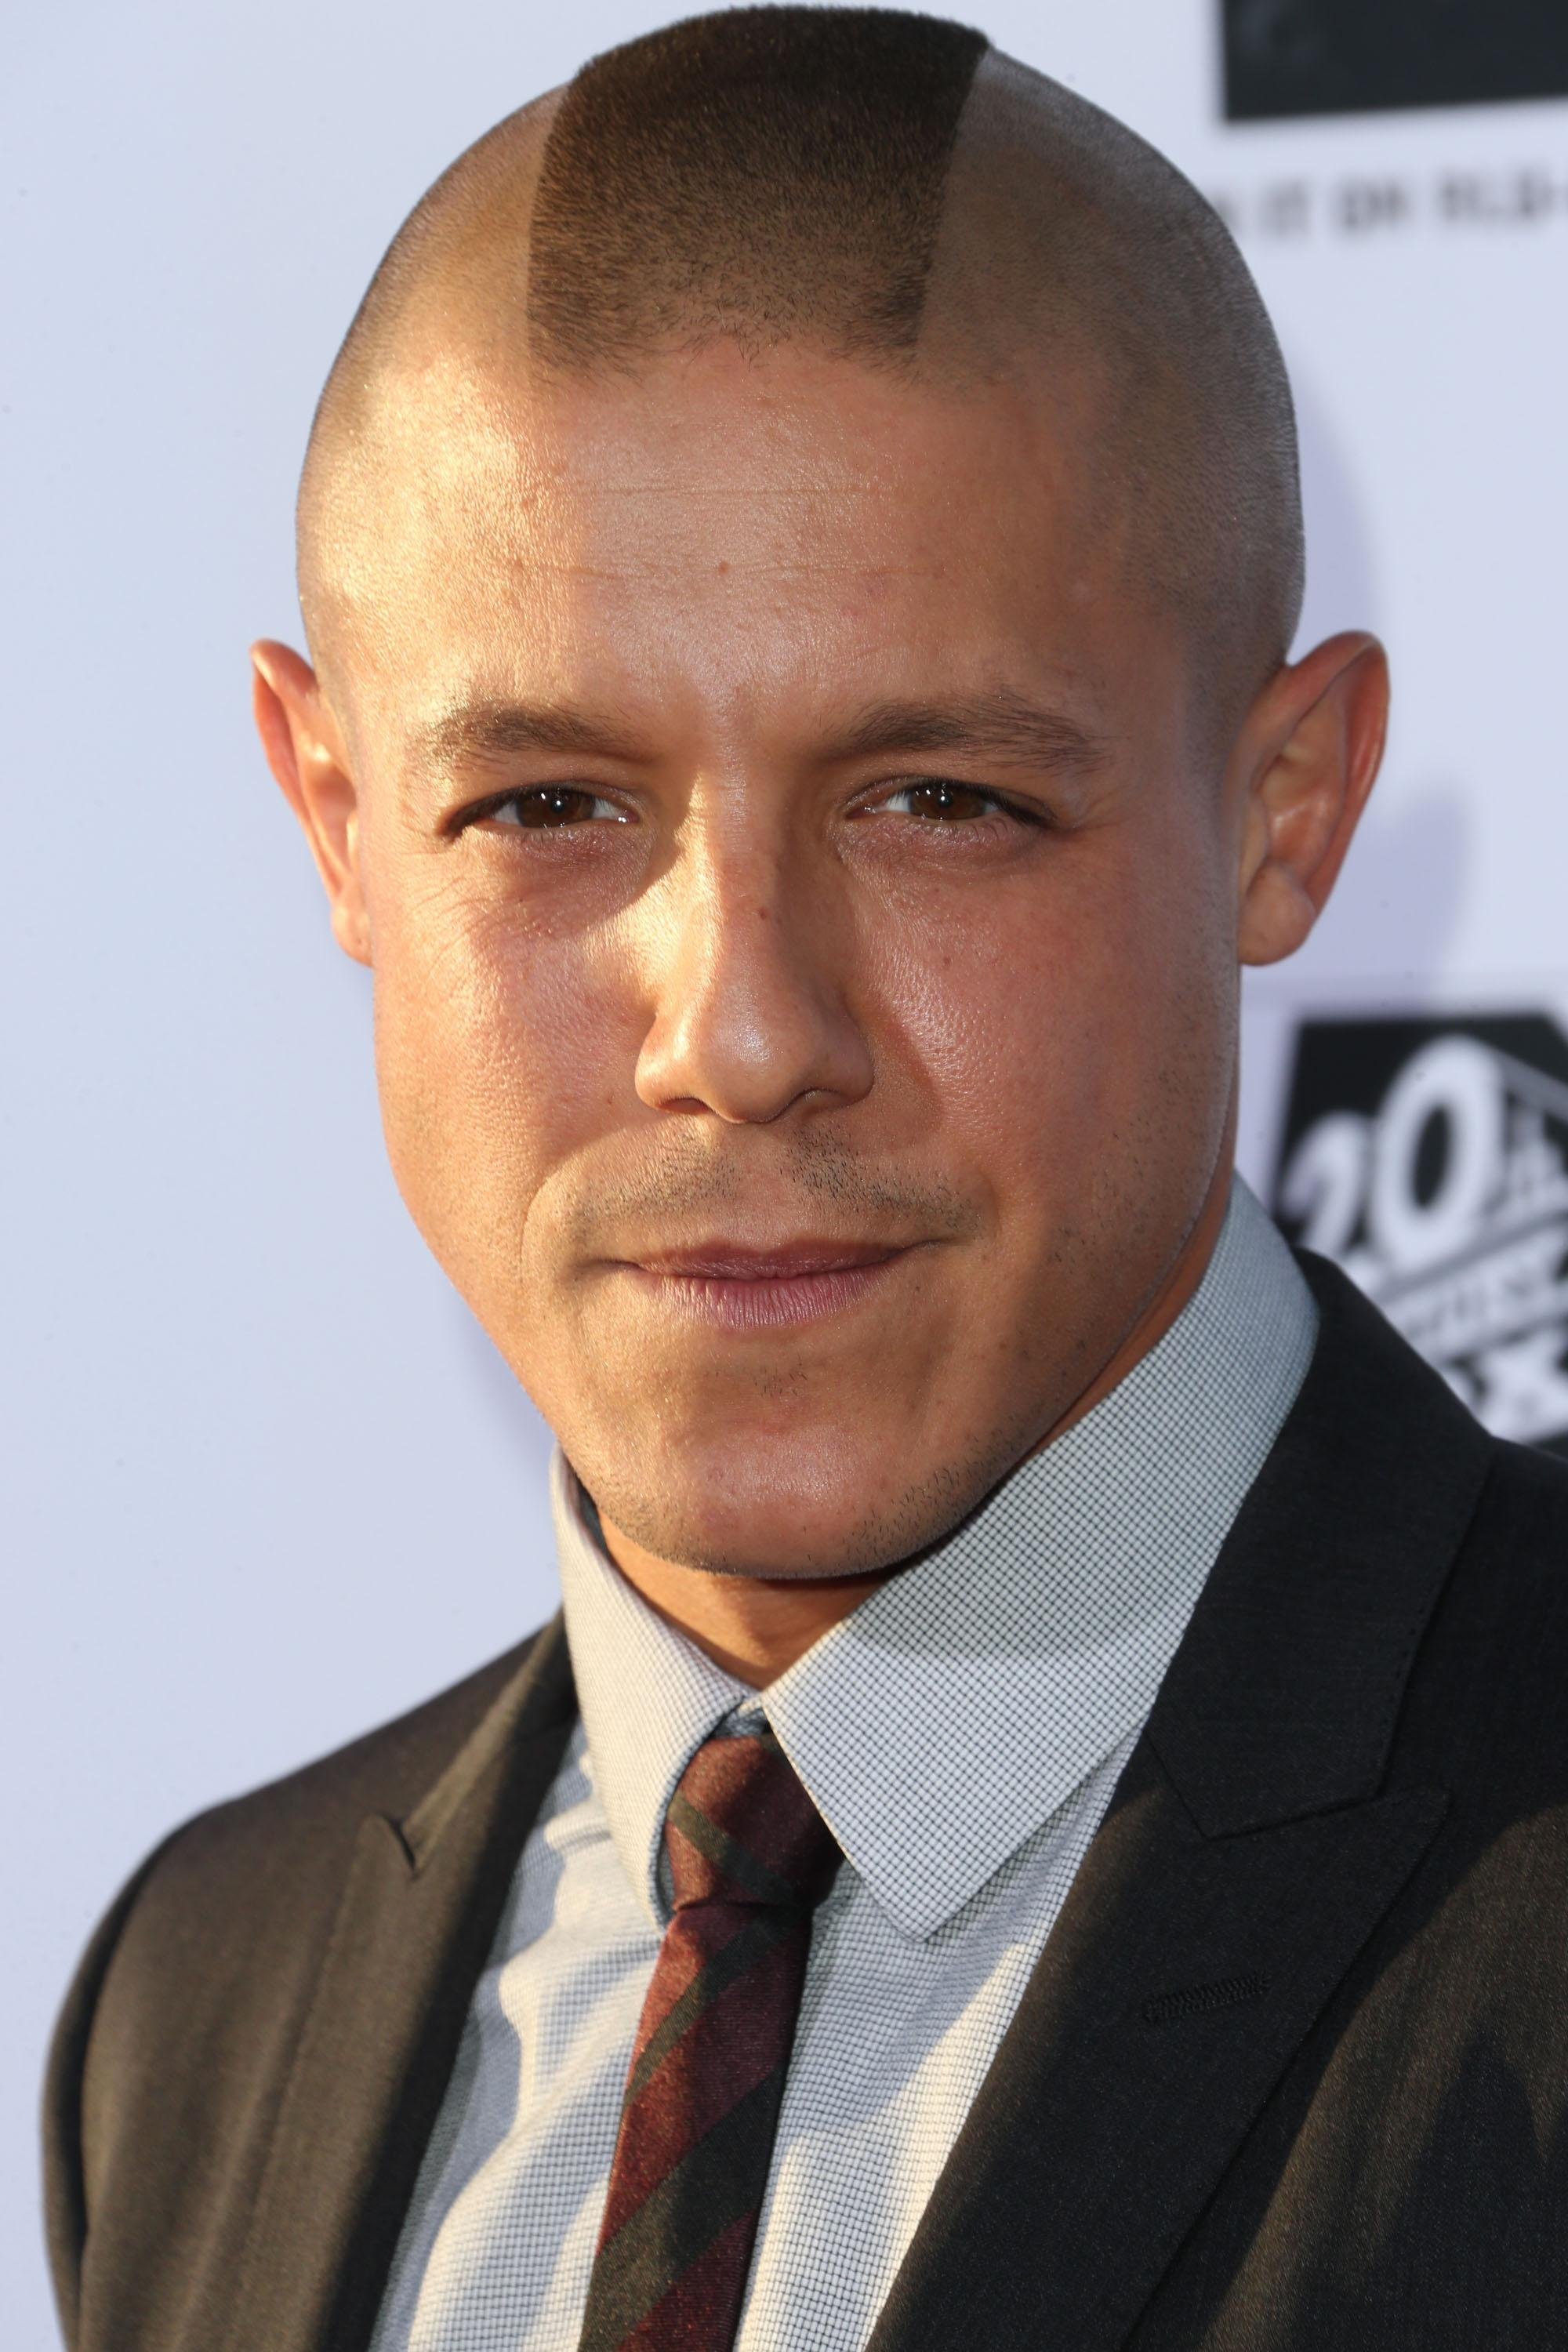 POPsessions: Sons of Anarchy Star Theo Rossi Shares His